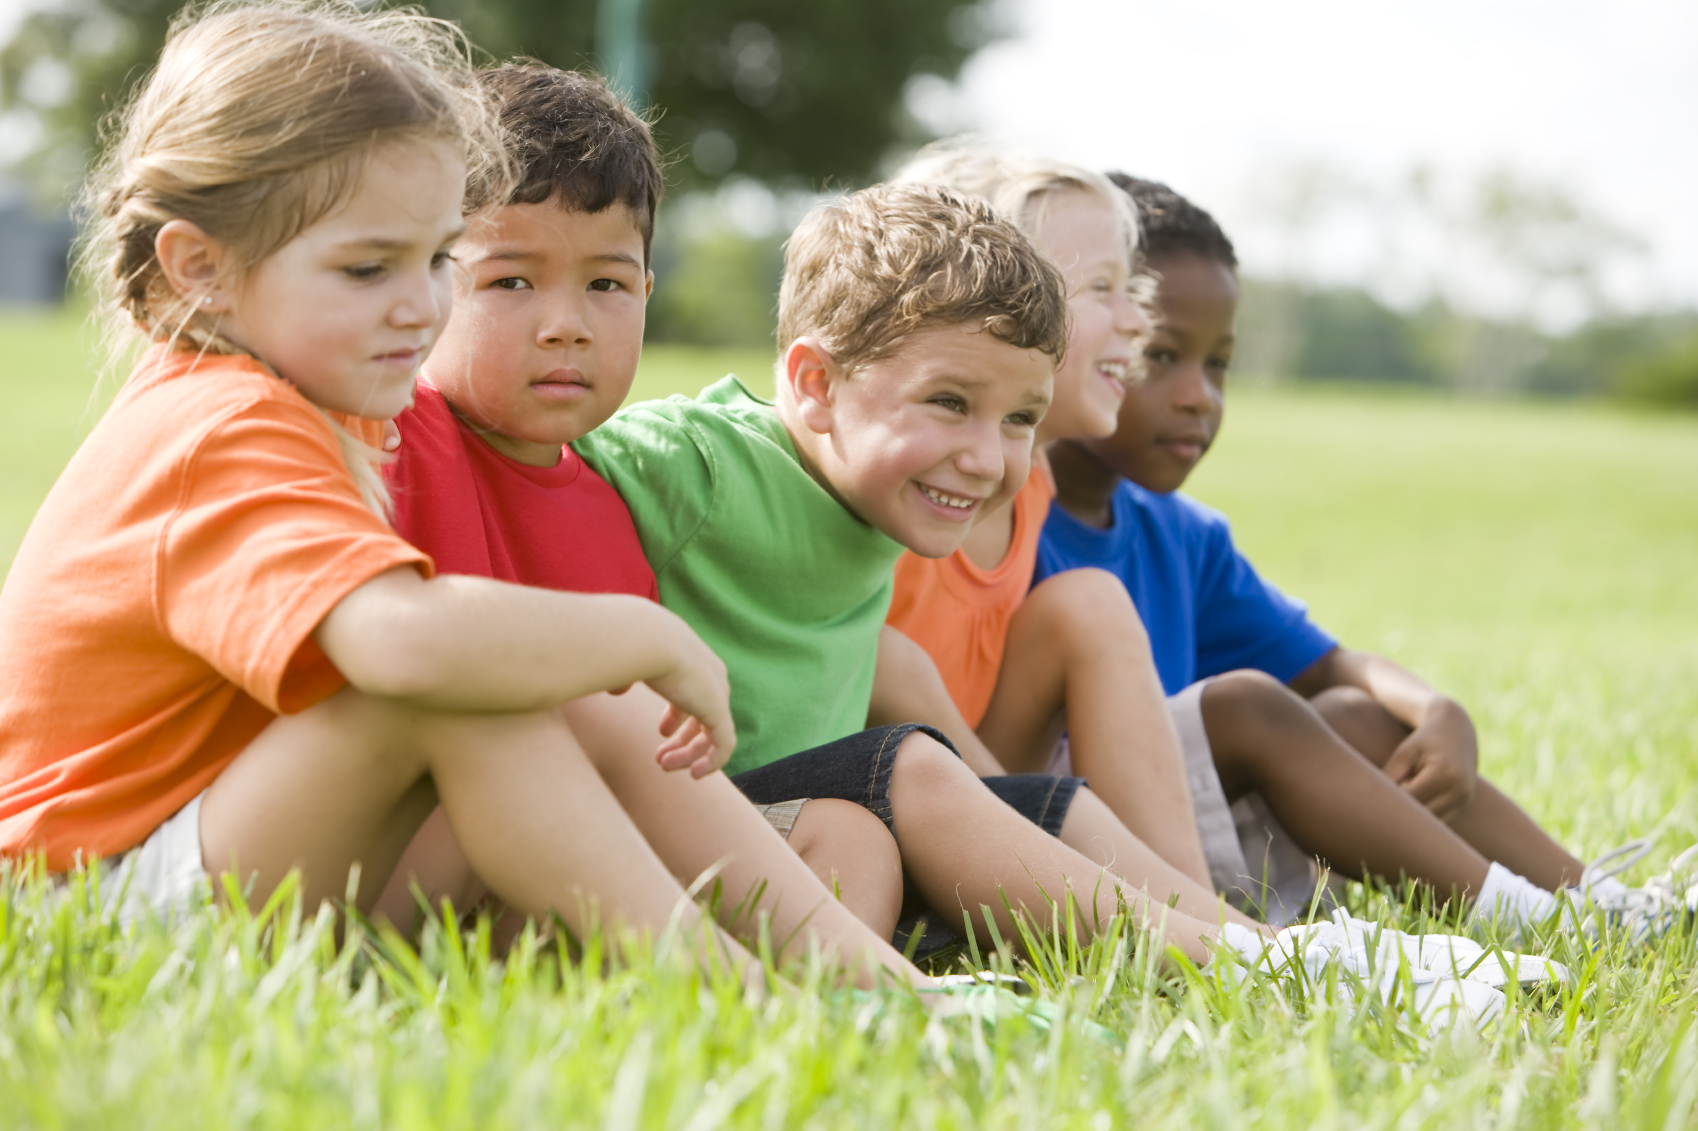 A group of preschoolers sits together outside. (stock image)